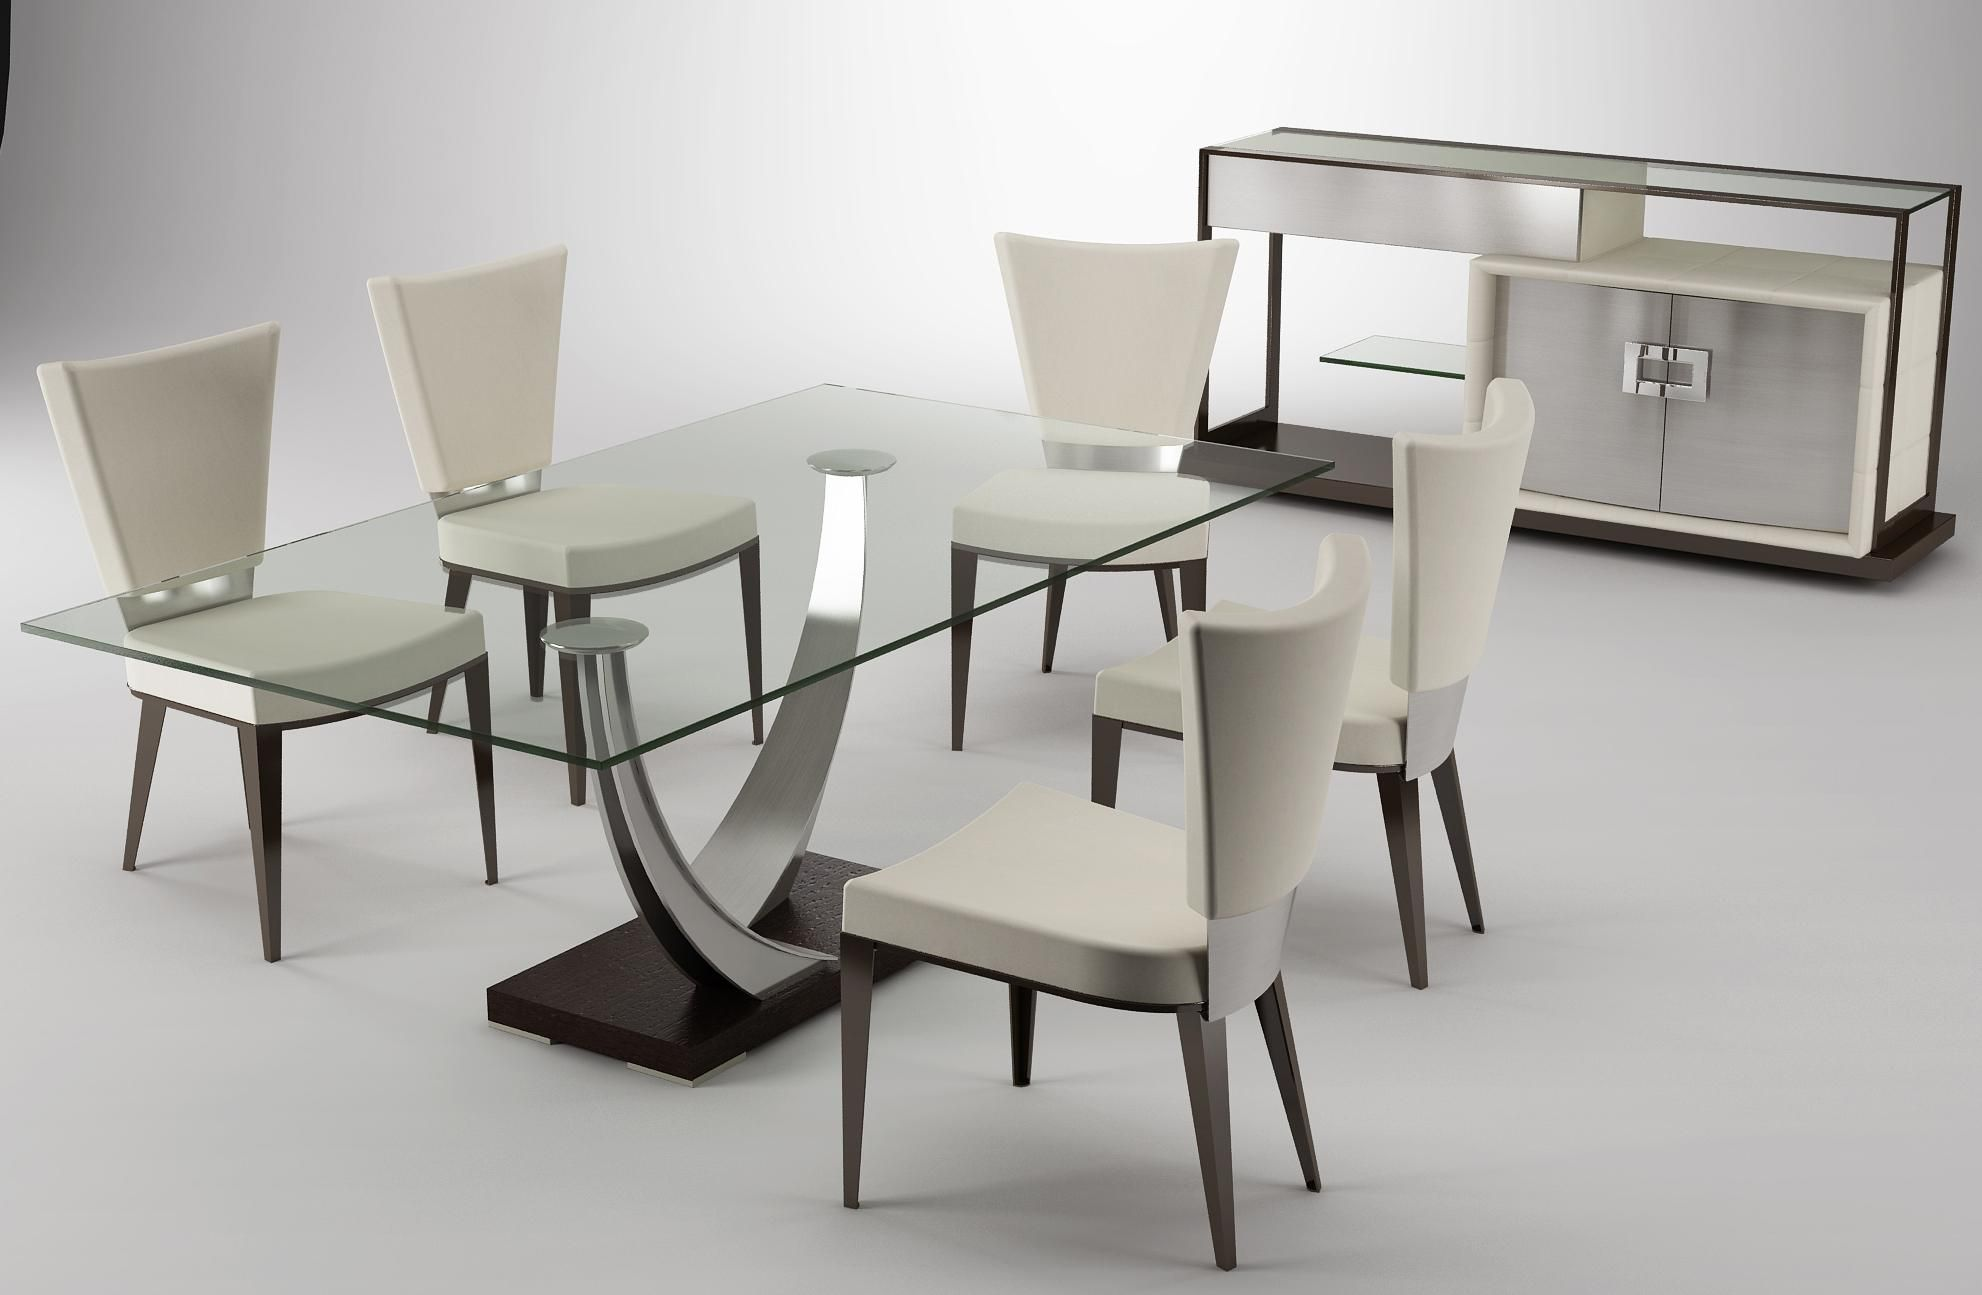 glass kitchen tables and chairs four hole faucets amazing modern stylish dining room table set designs elite